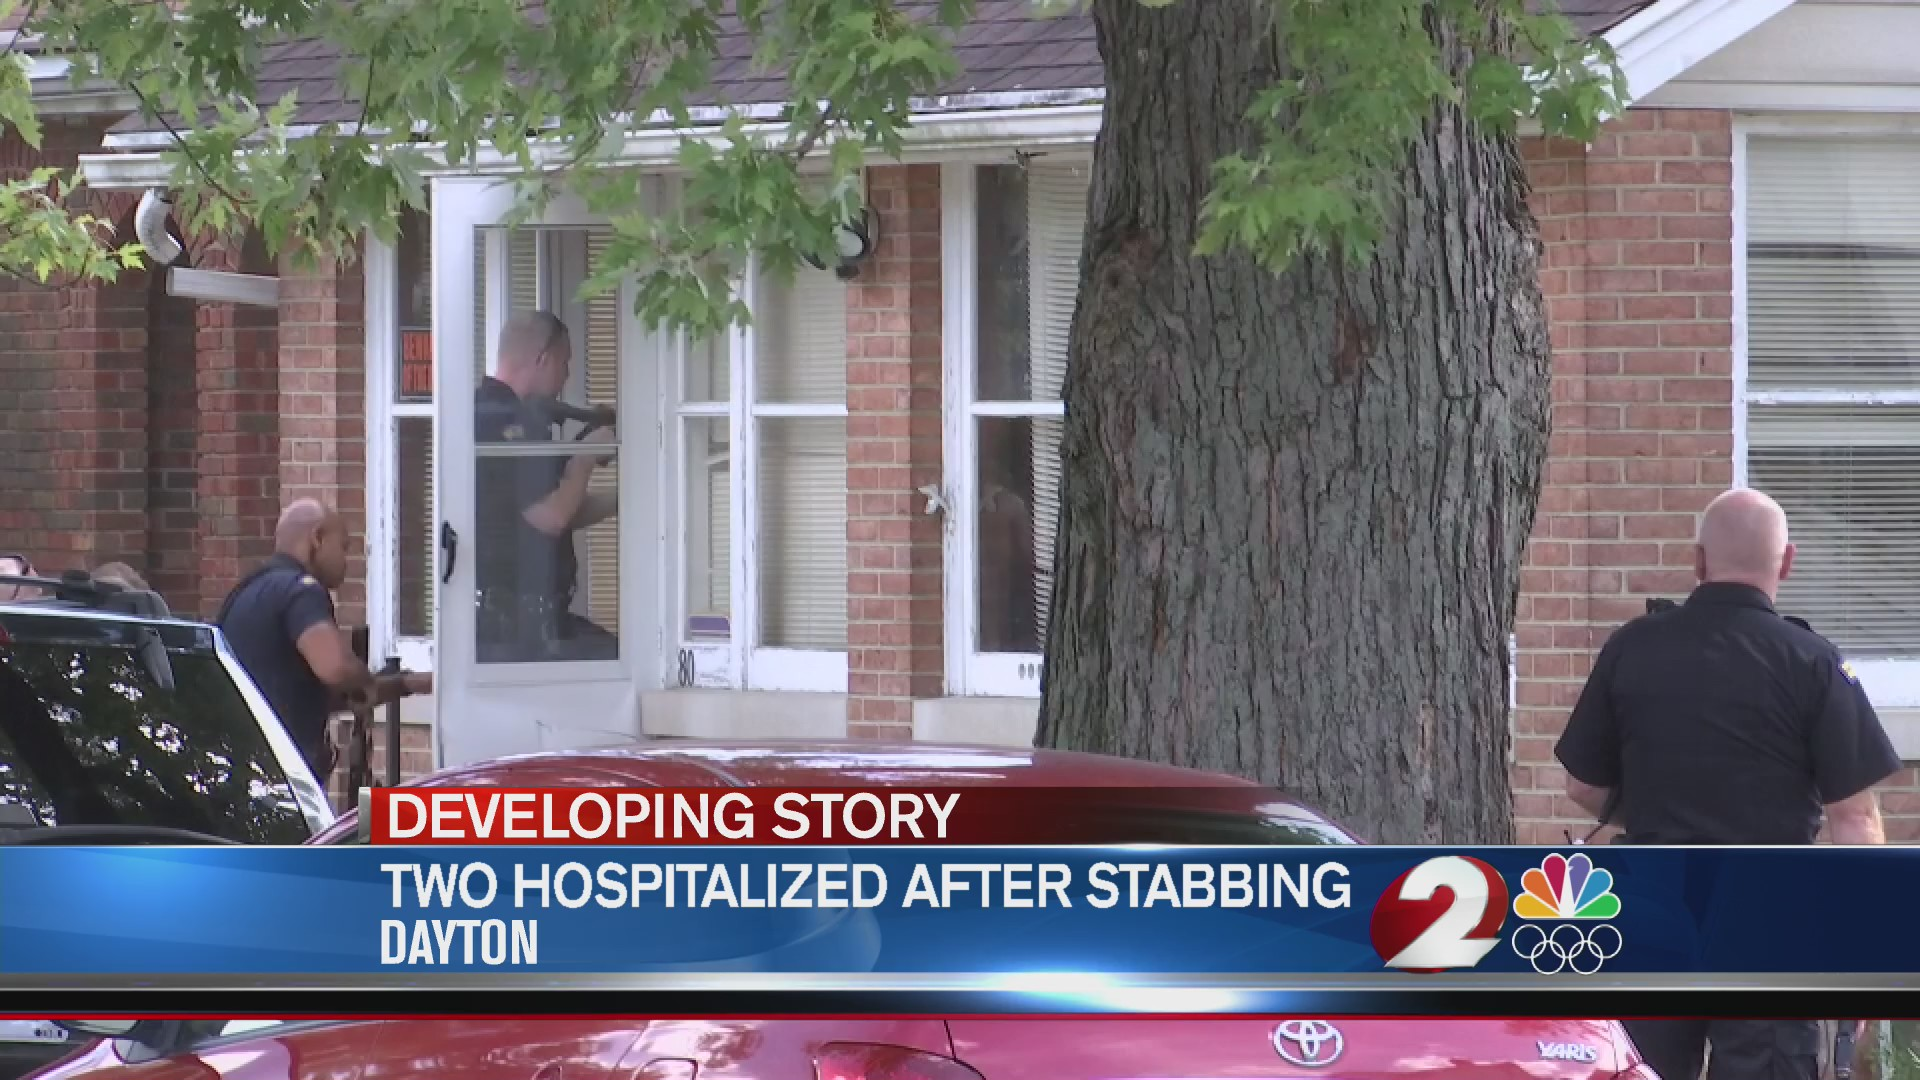 Two hospitalized after stabbing